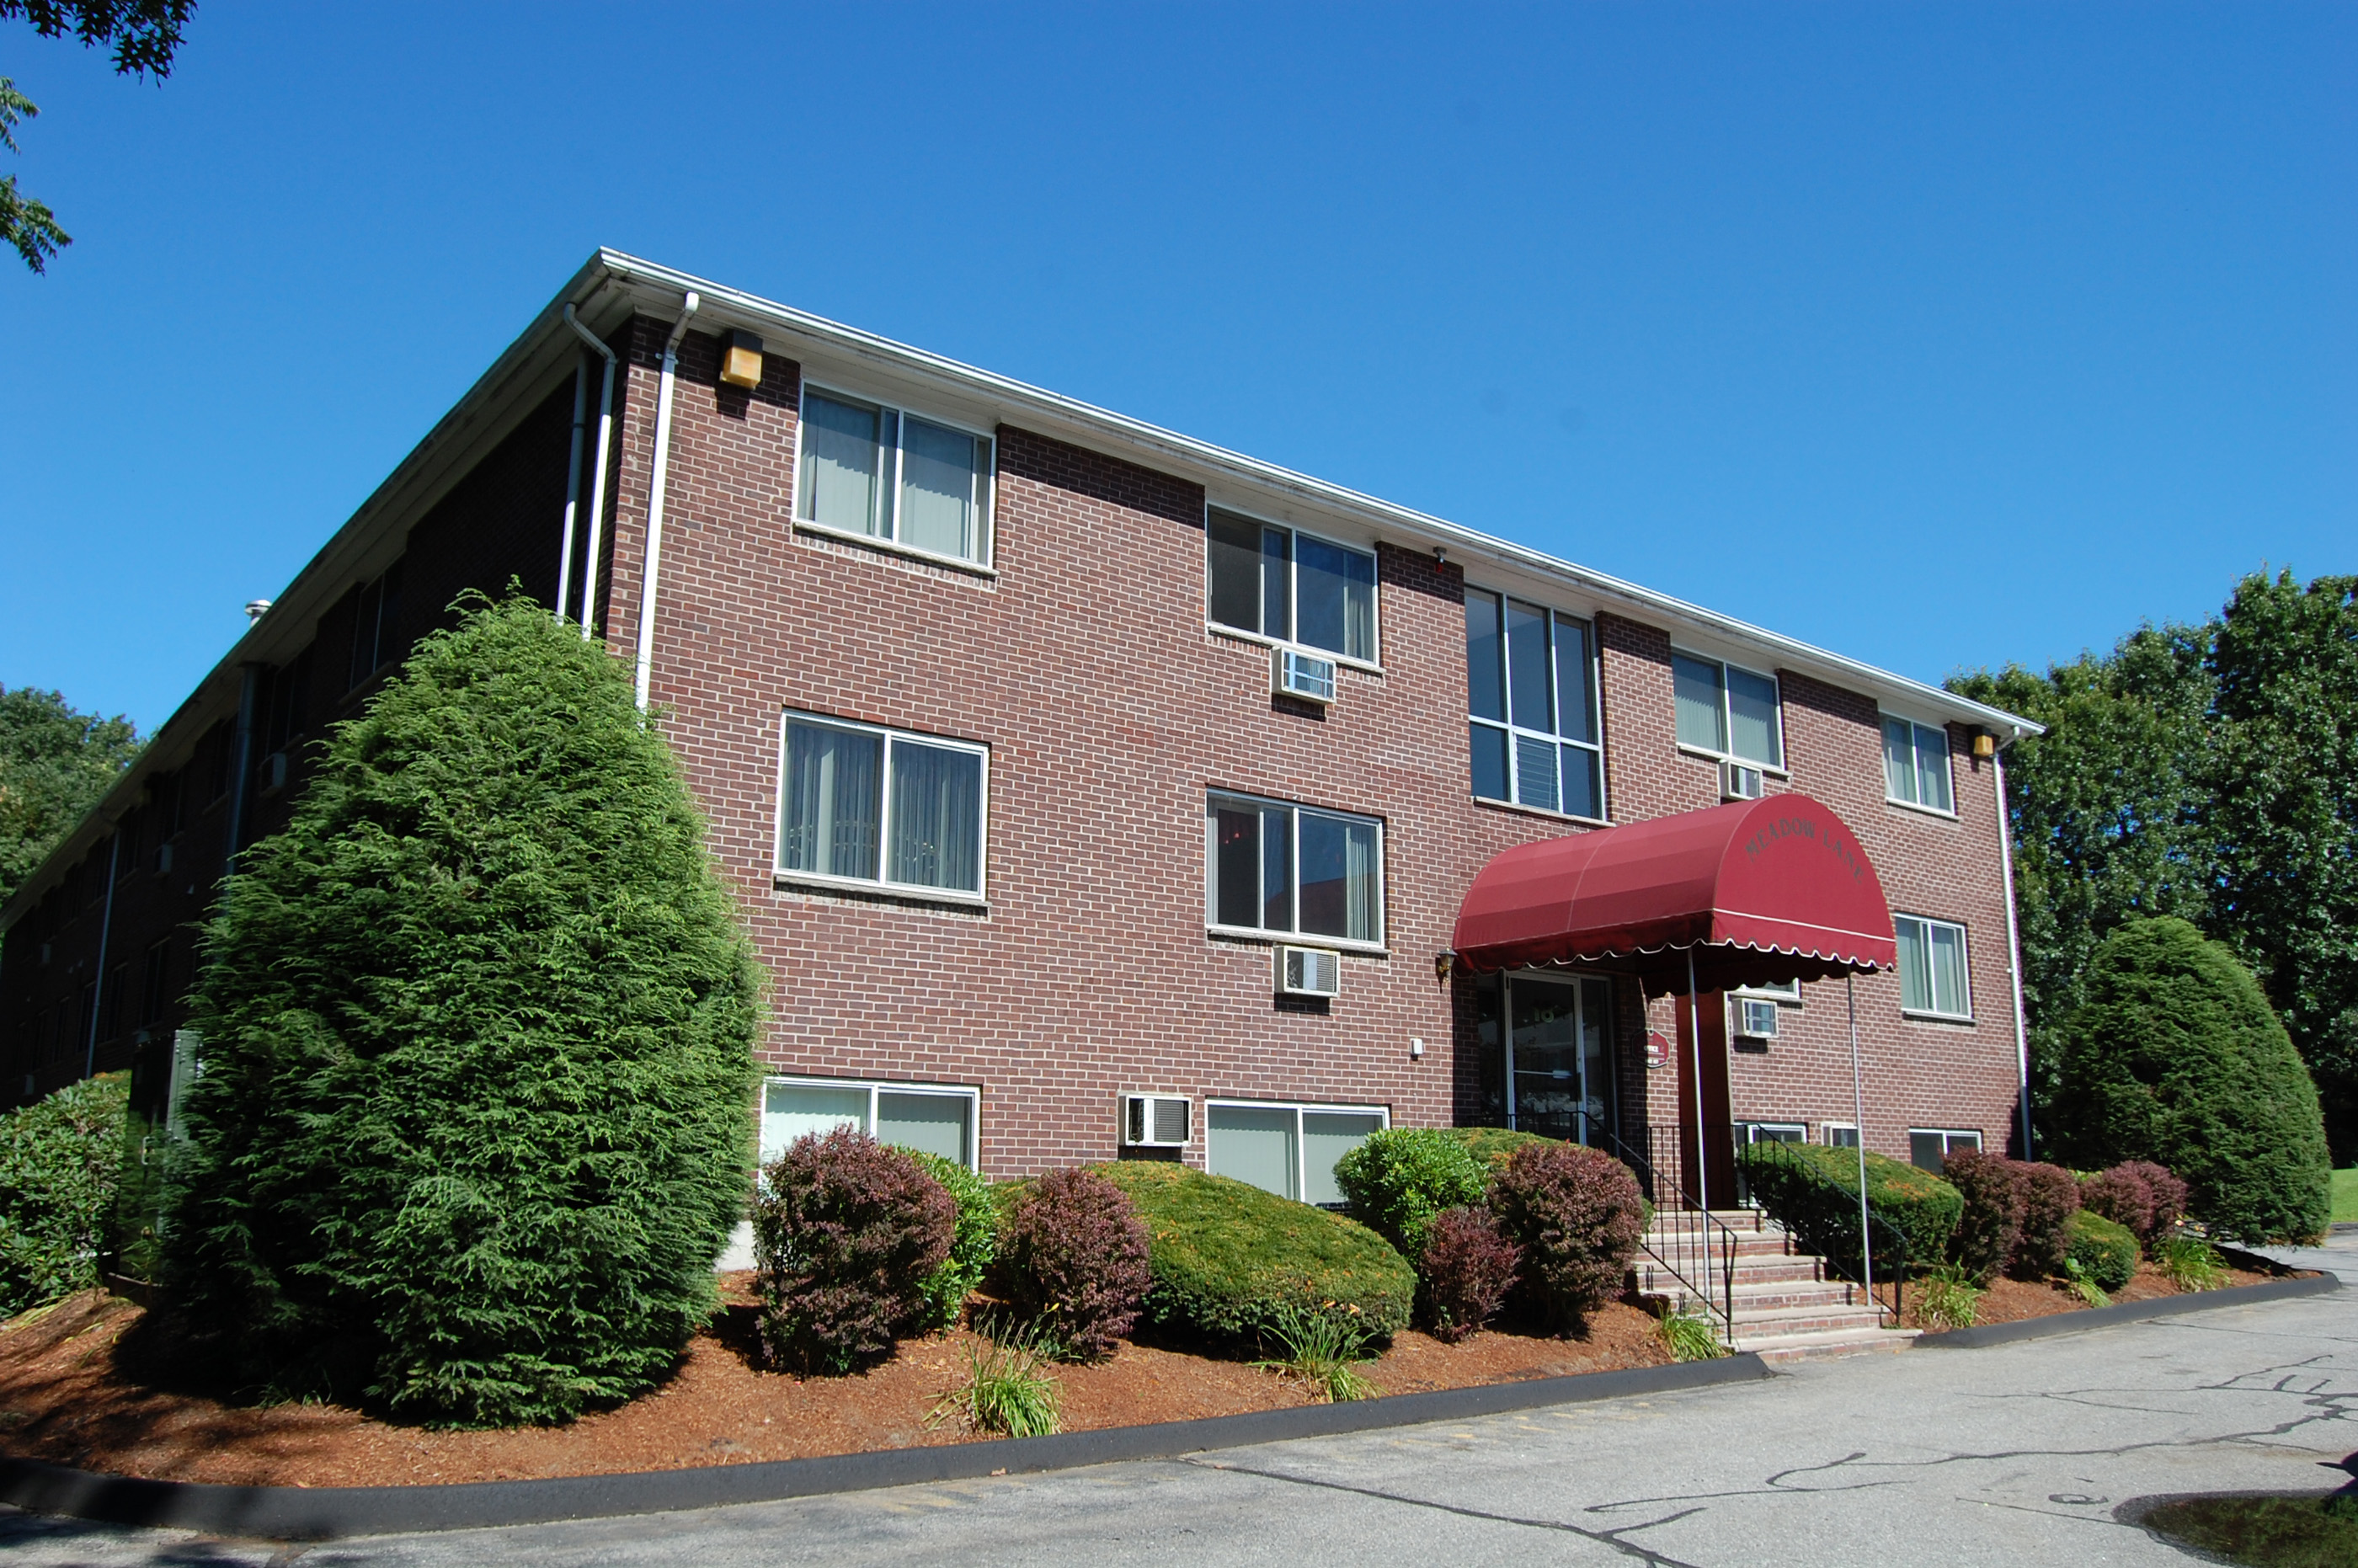 meadow lane apartments photo gallery 2 - 2 Bedroom Apartments For Rent In Lowell Ma